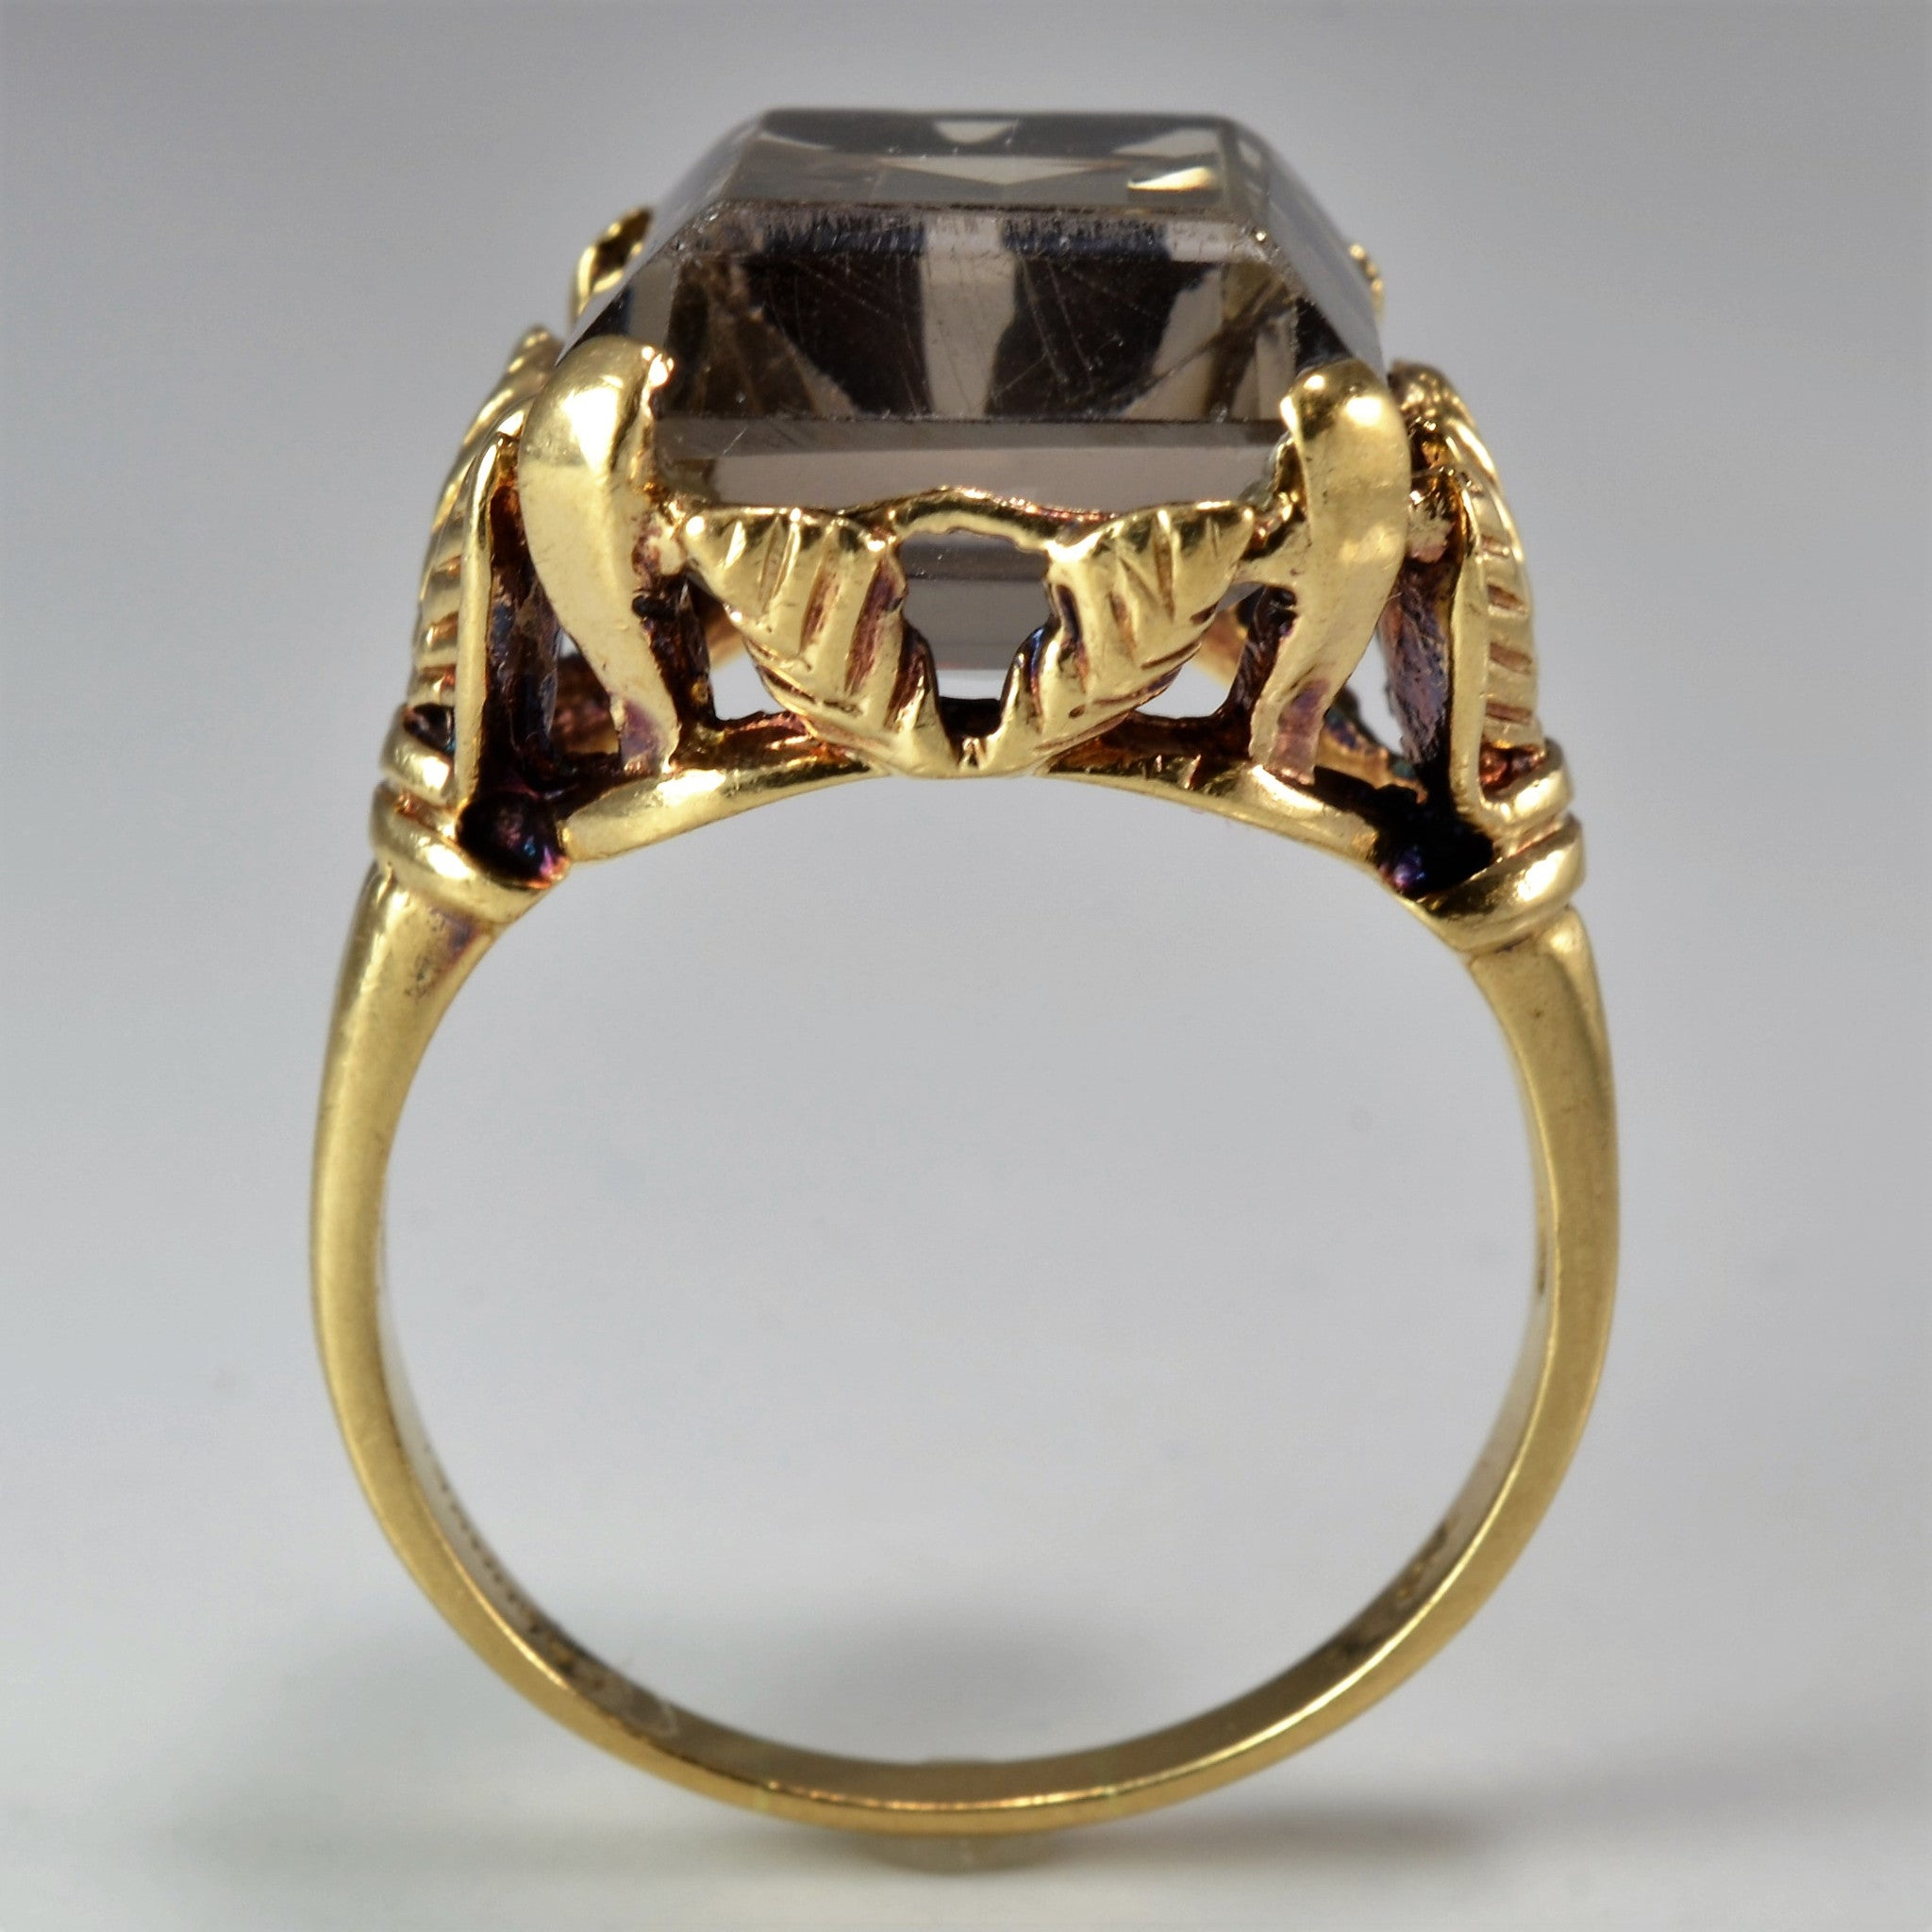 Vintage Emerald Cut Smoky Quartz Ring | SZ 7.75 |